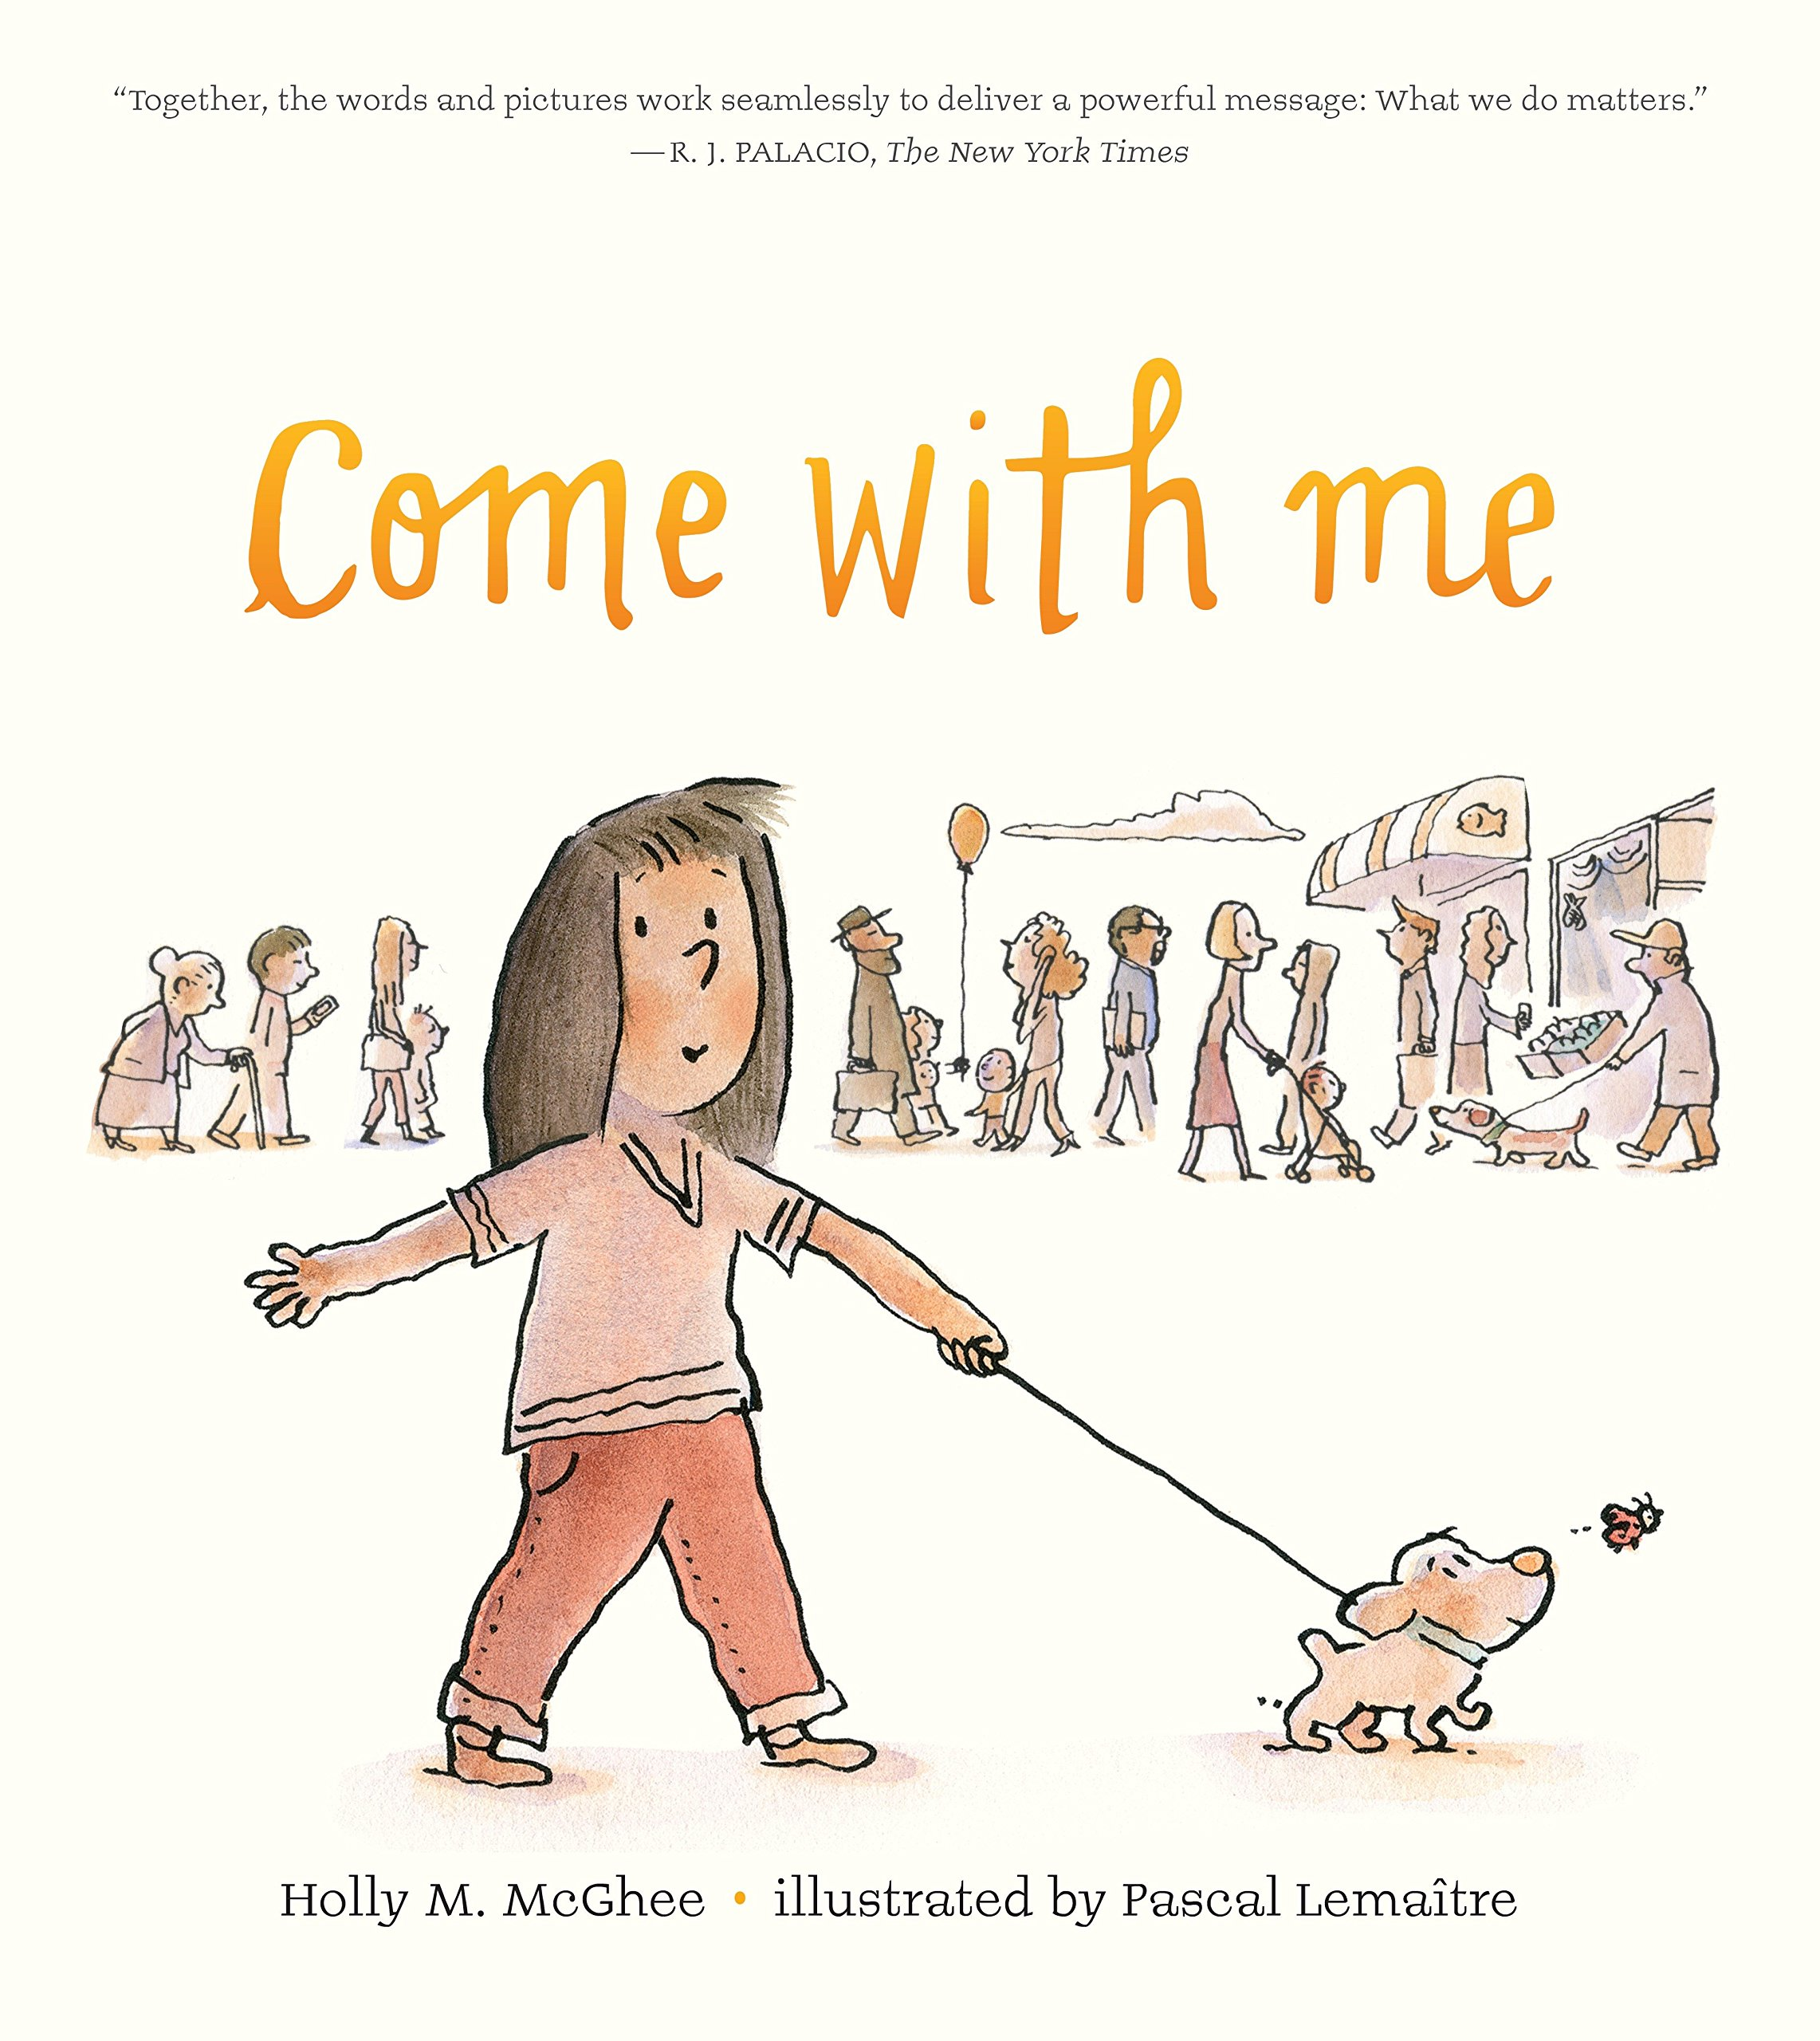 Come With Me, by Holly M. McGhee